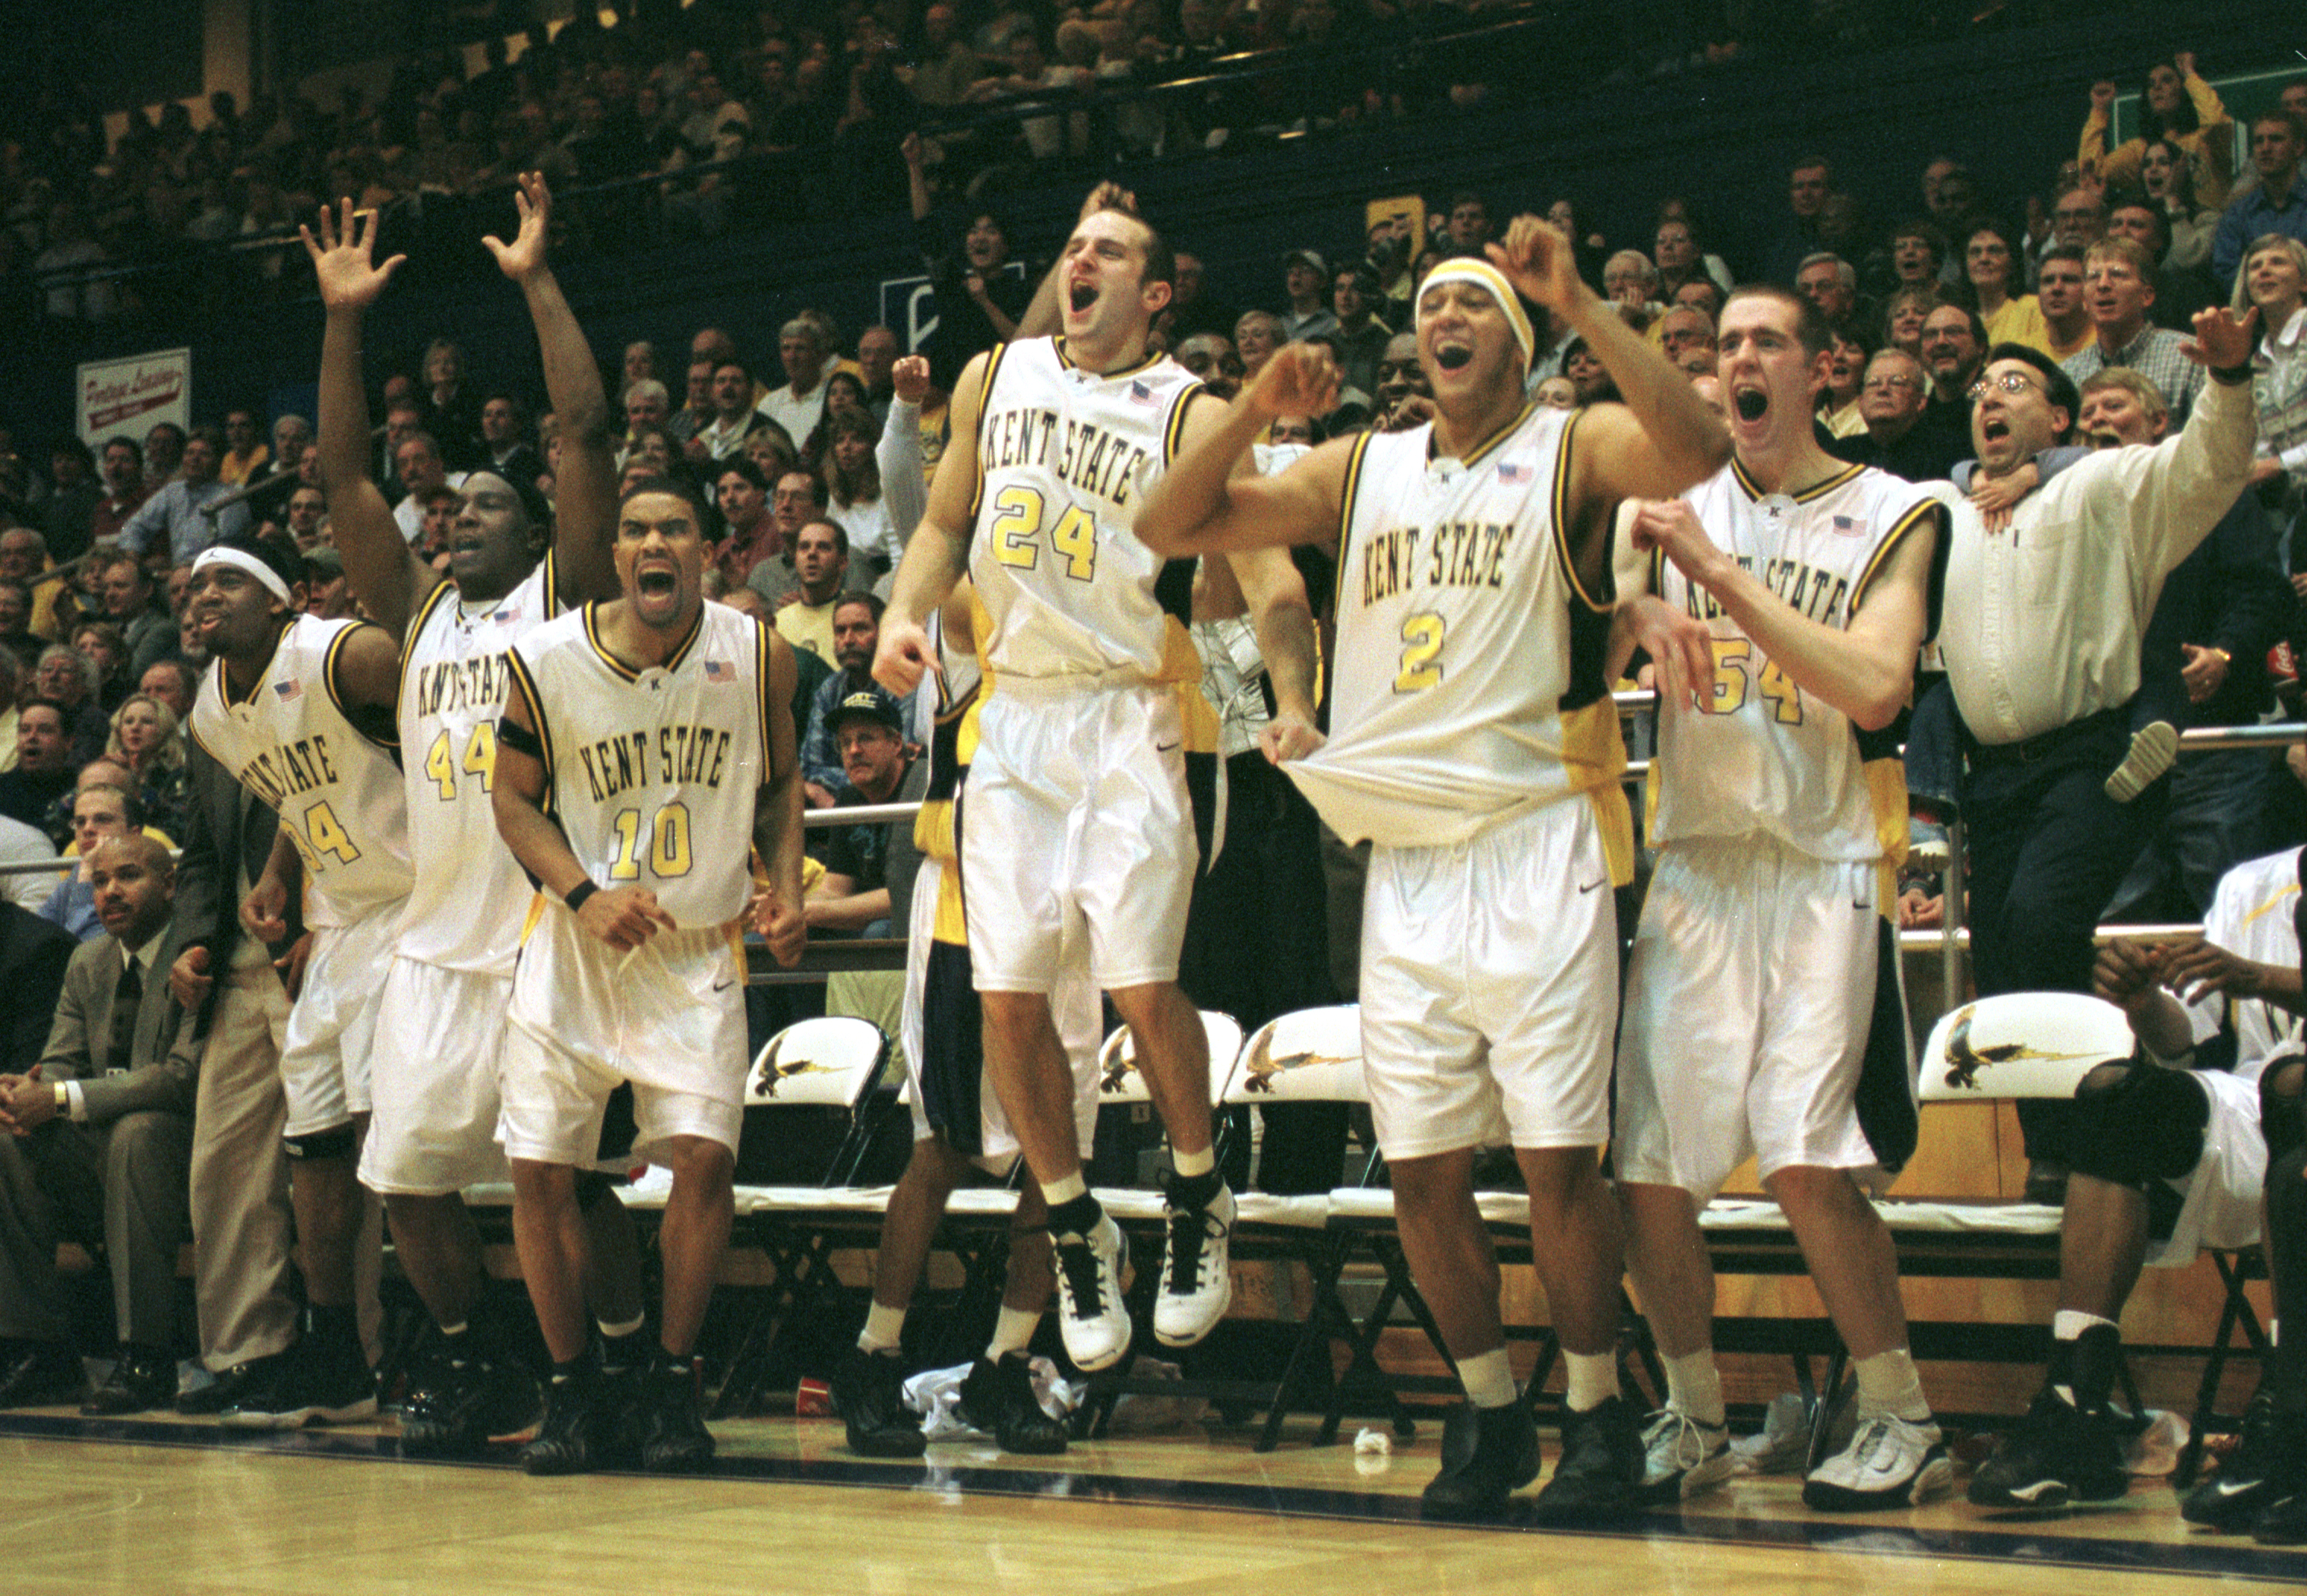 Bryan Bedford (34), Antonio Gates (44), Demetric Shaw (10), Trevor Huffman (24), Nate Gerwig (2) and John Edwards (54) celebrate a win at the M.A.C. Center during the 2001–02 season.